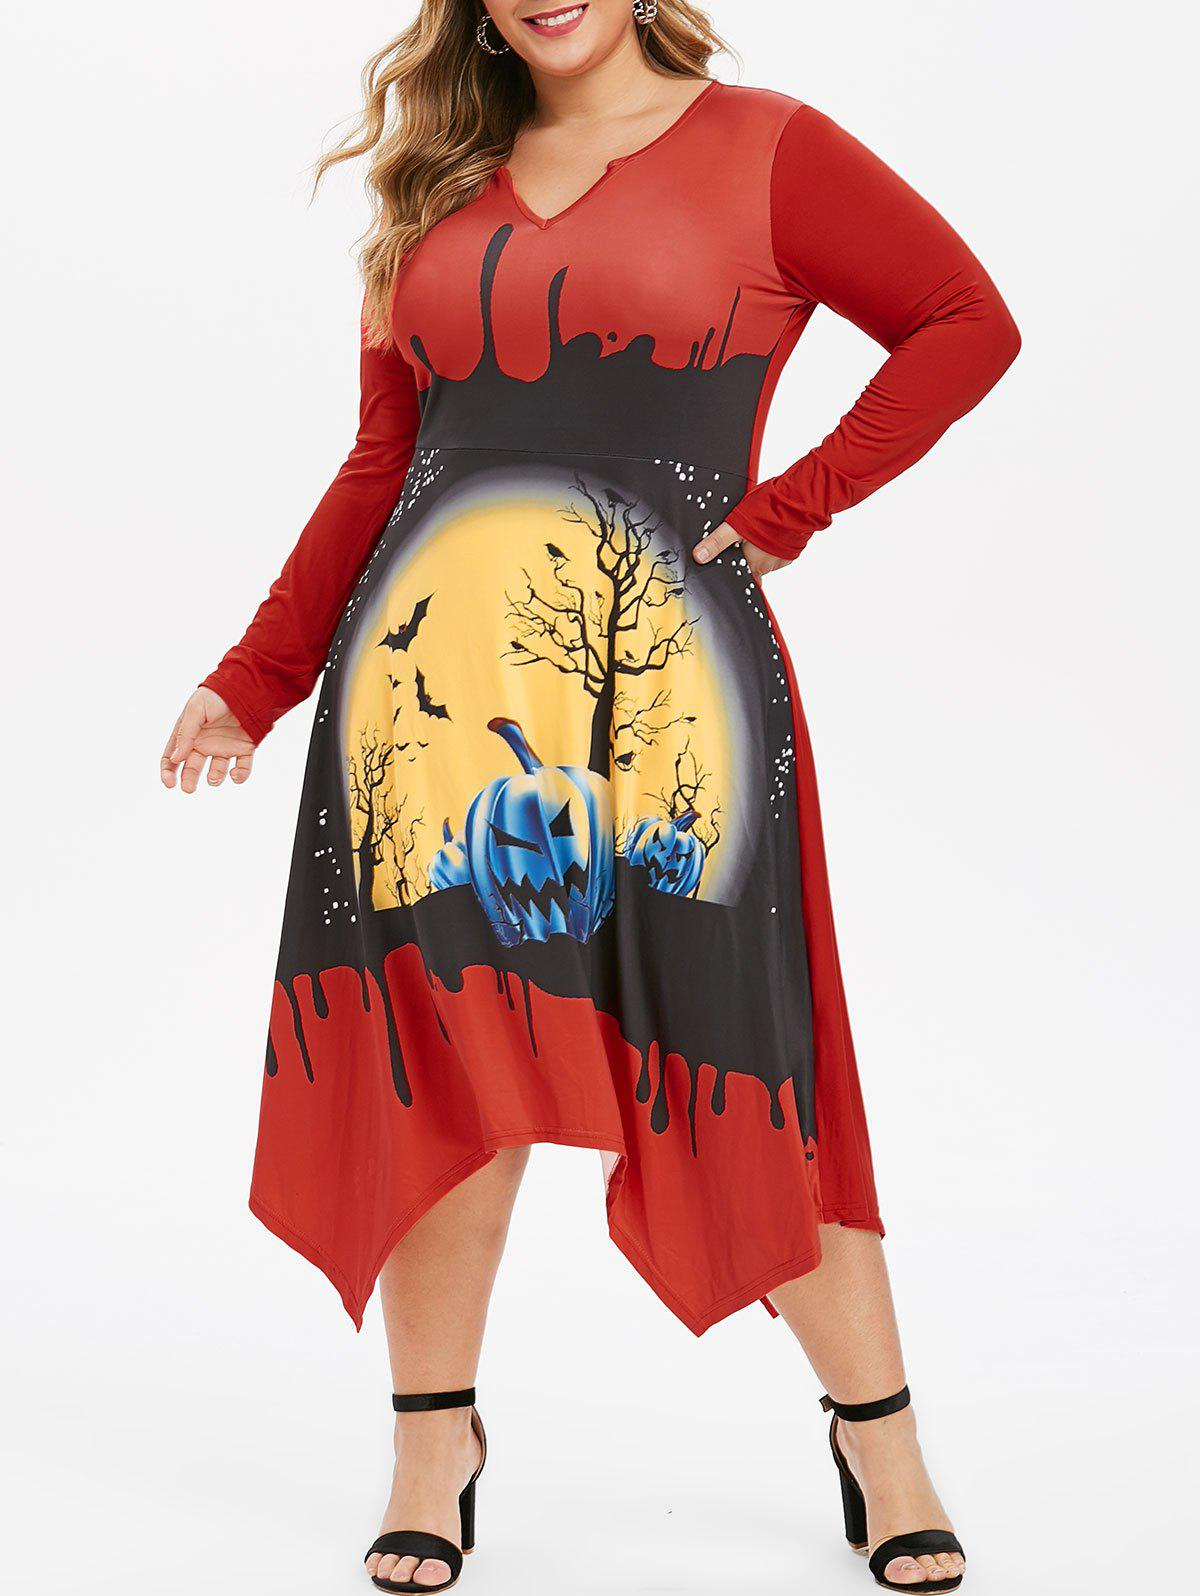 Pumpkin Bat Print V-notch Plus Size Halloween Dress